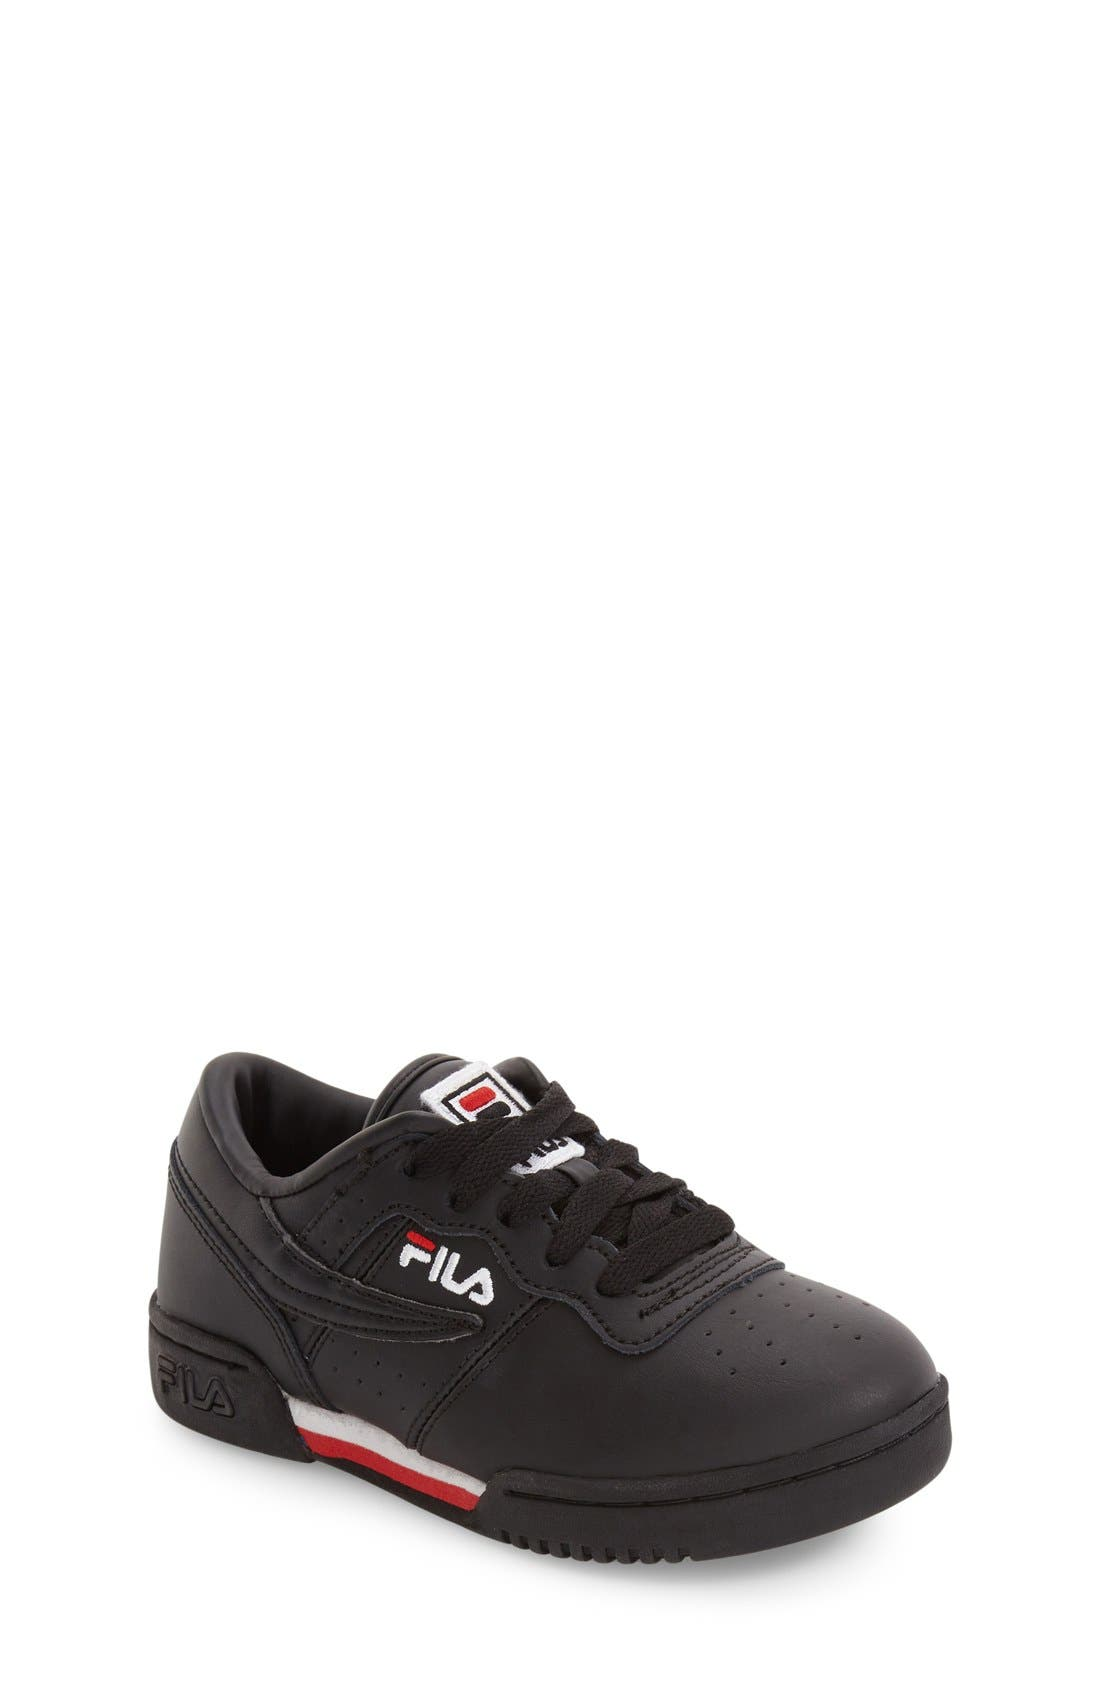 Main Image - FILA Original Sneaker (Toddler, Little Kid & Big Kid)